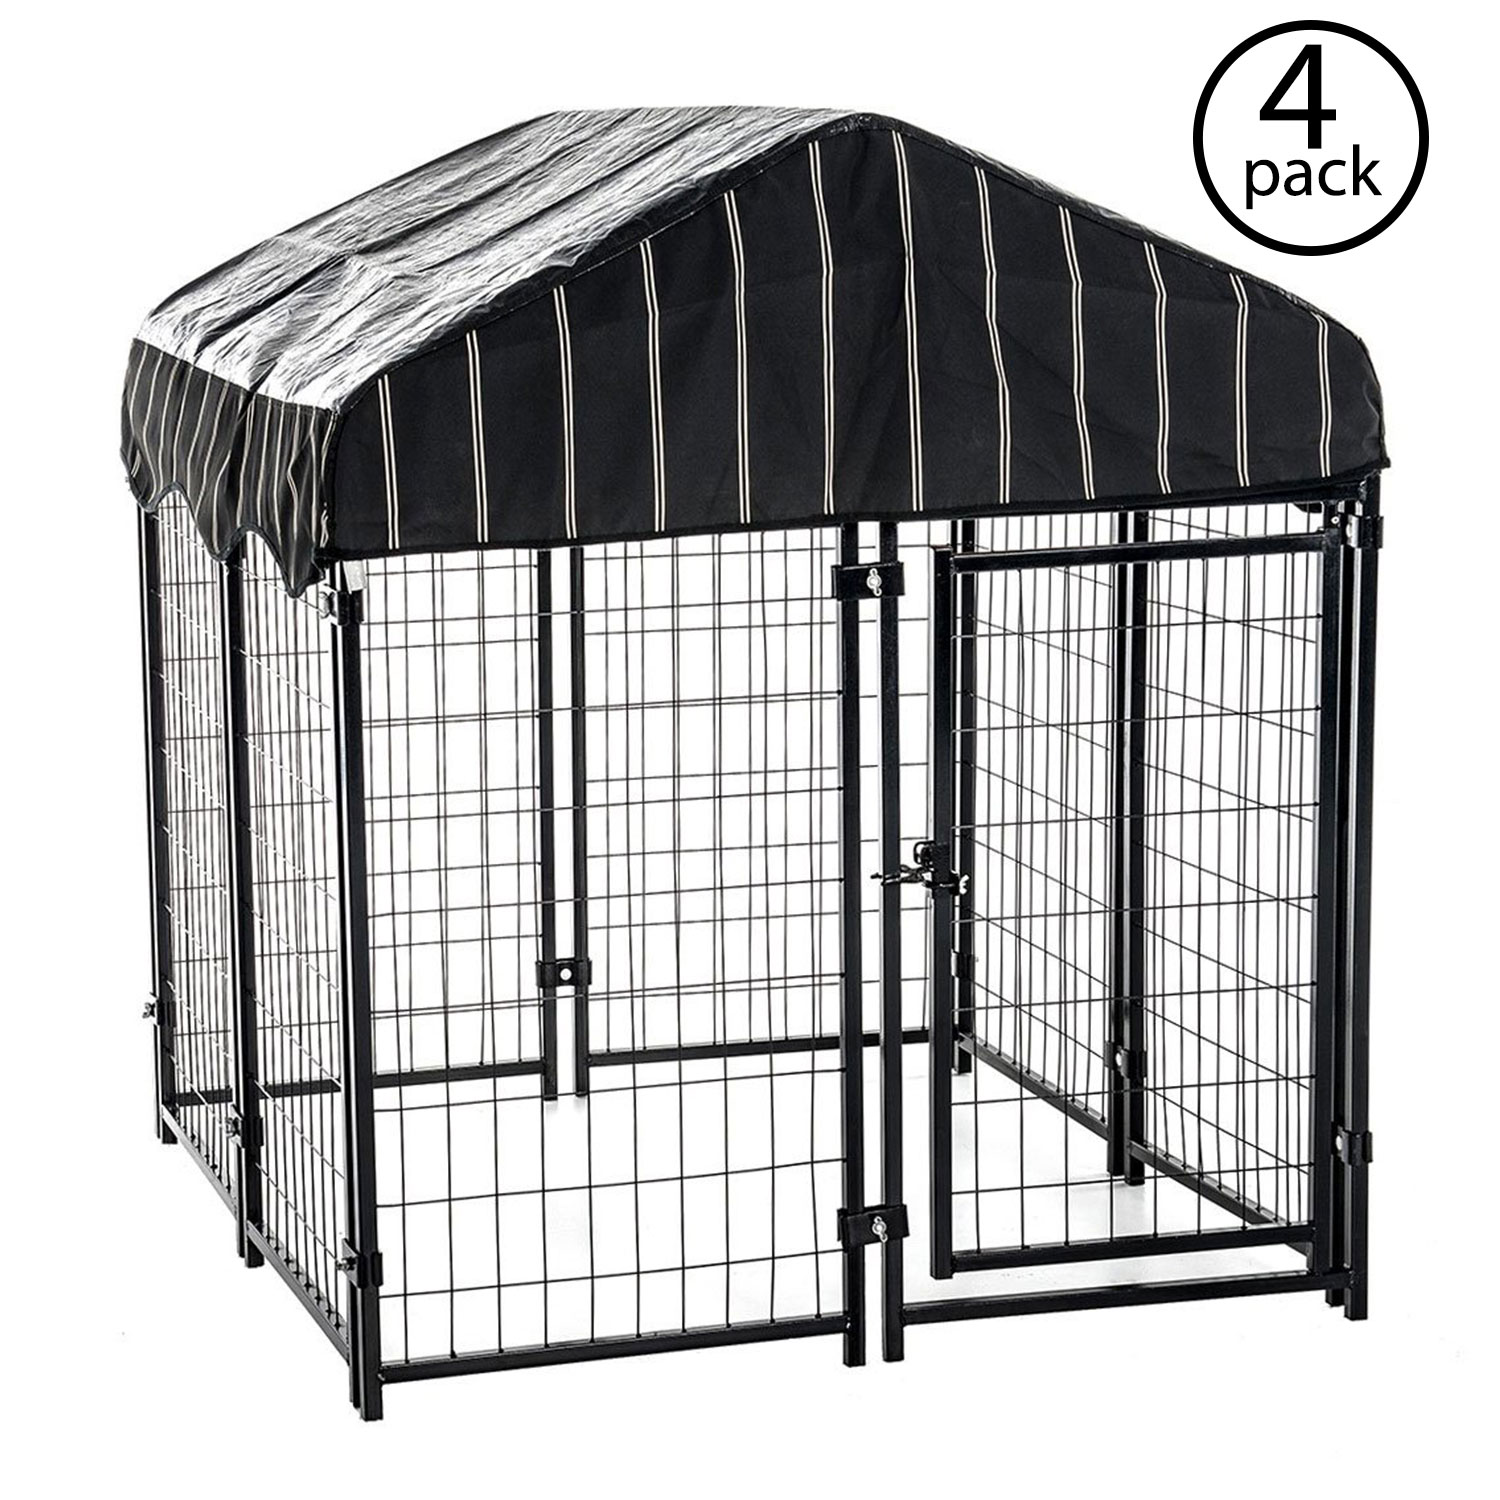 Lucky Dog 4' x 4' x 4.5' Covered Wire Dog Fence Kennel Pet Play Pen (4 Pack)